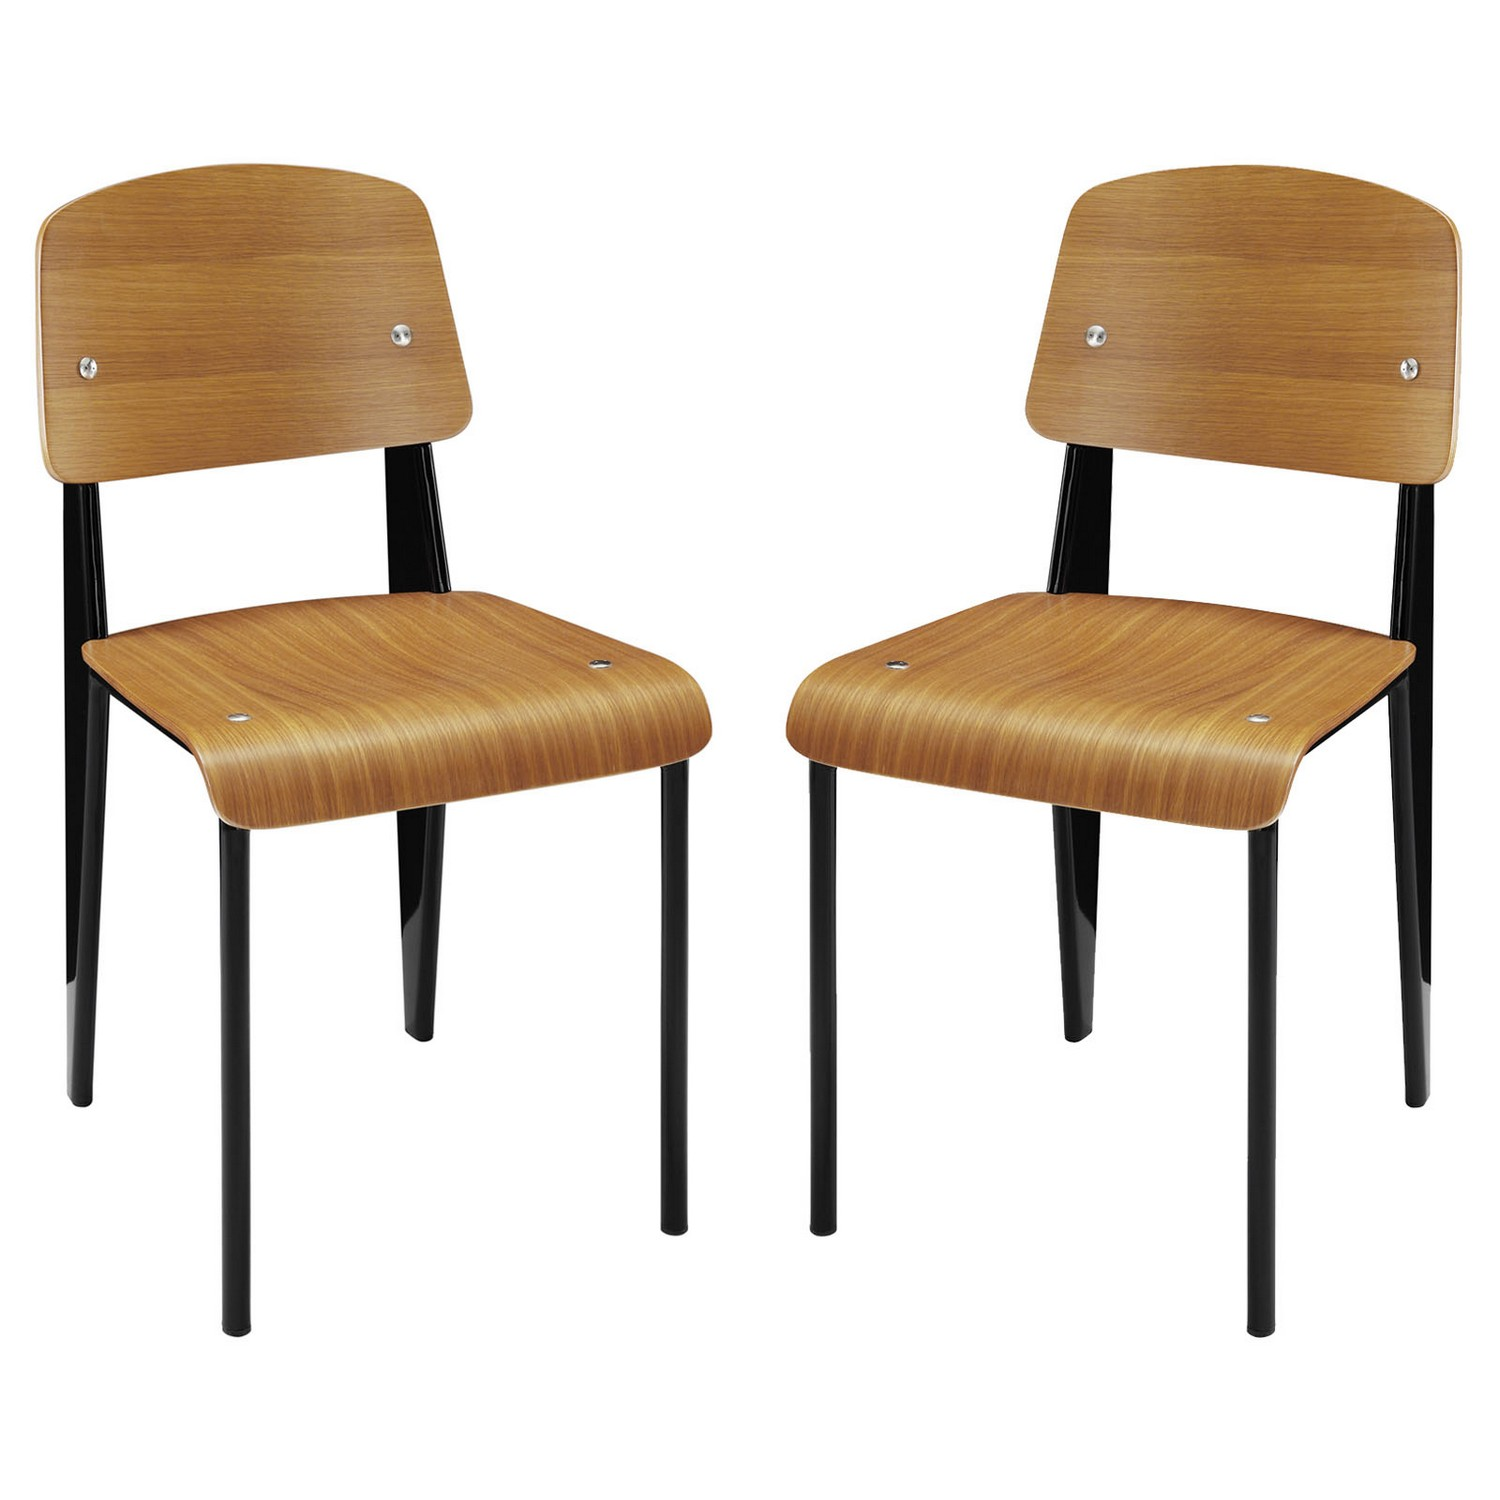 Modway Cabin Dining Side Chair Set of 2 - Walnut